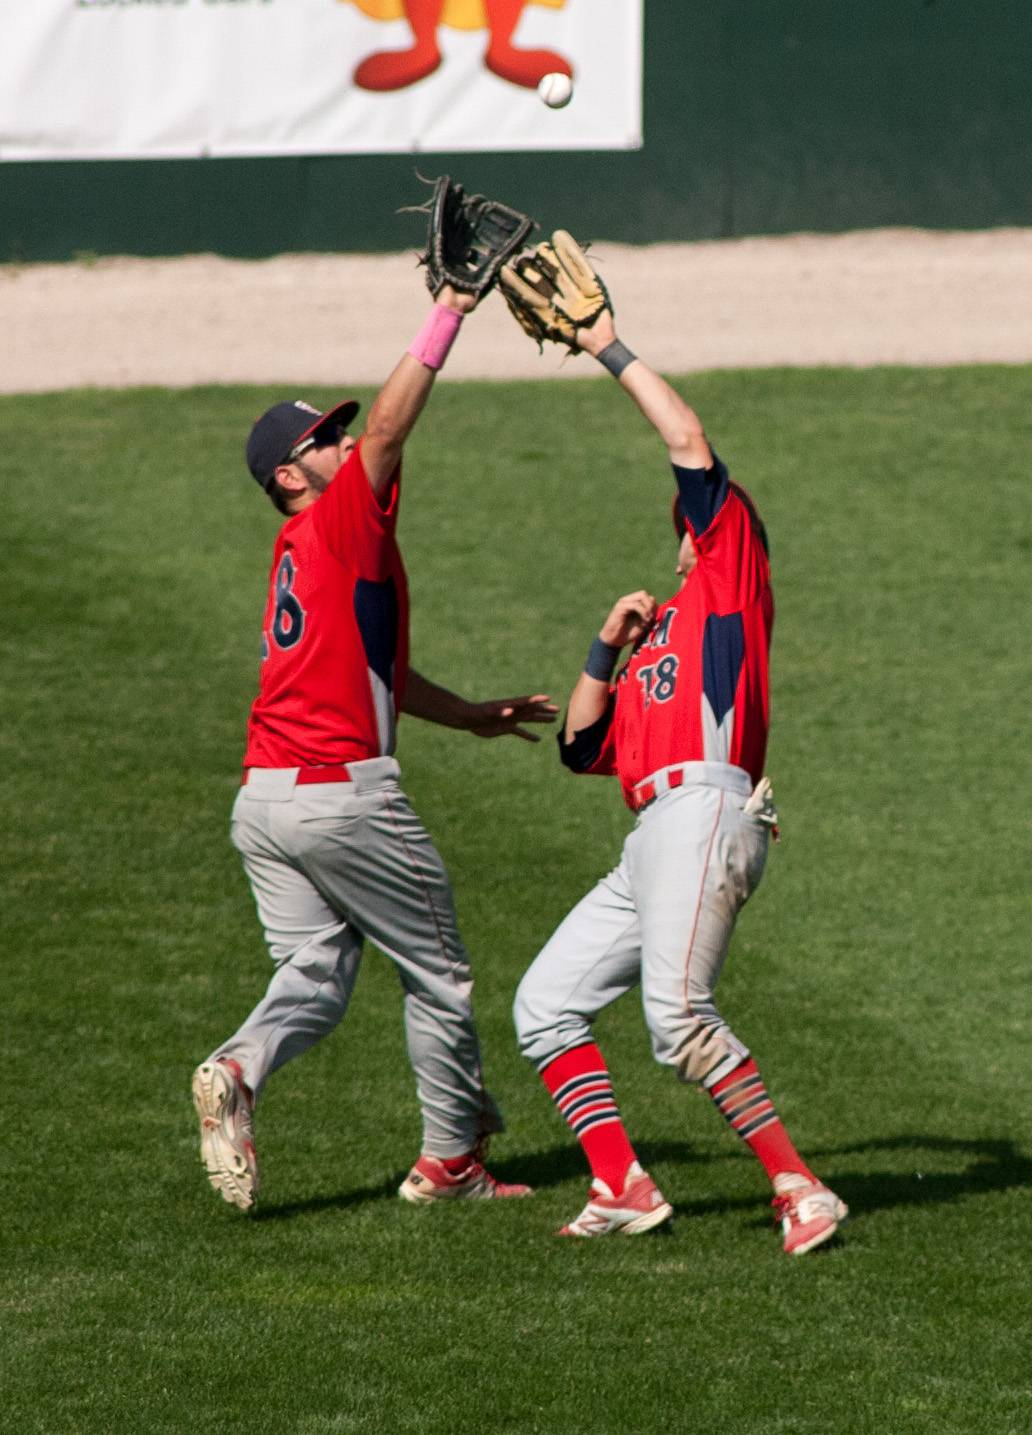 South Elgin outfielders Antonio Danesi (28) and Nick Menken (18) nearly collide in the fourth inning while chasing a flyball during the Class 4A third-place game at Silver Cross Field in Joliet.